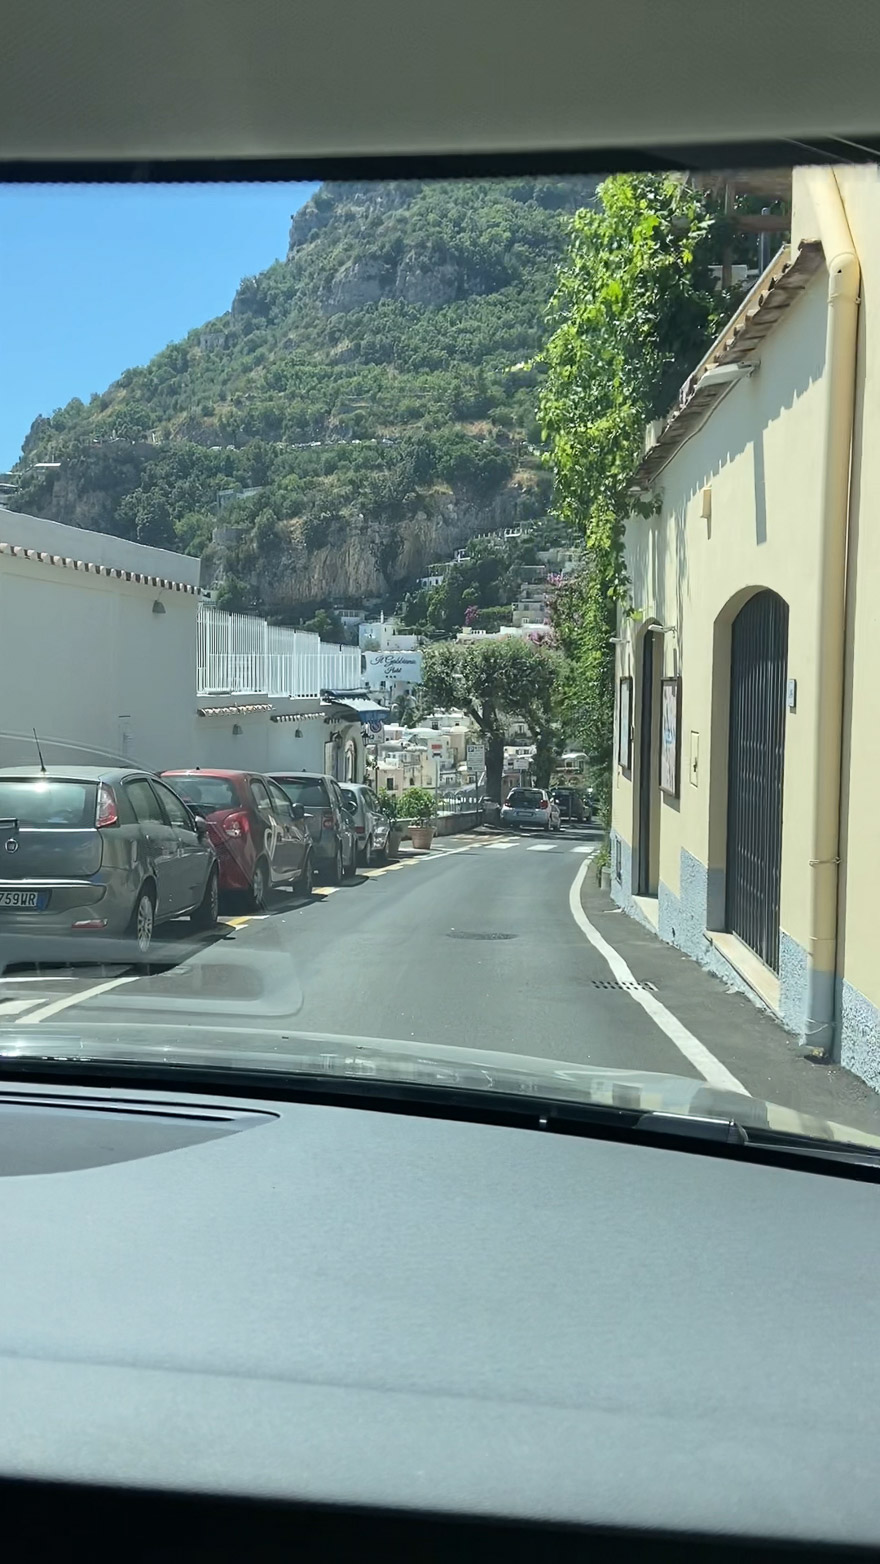 amalfi coast 32 - GUIDE - Visiting the Amalfi Coast during COVID